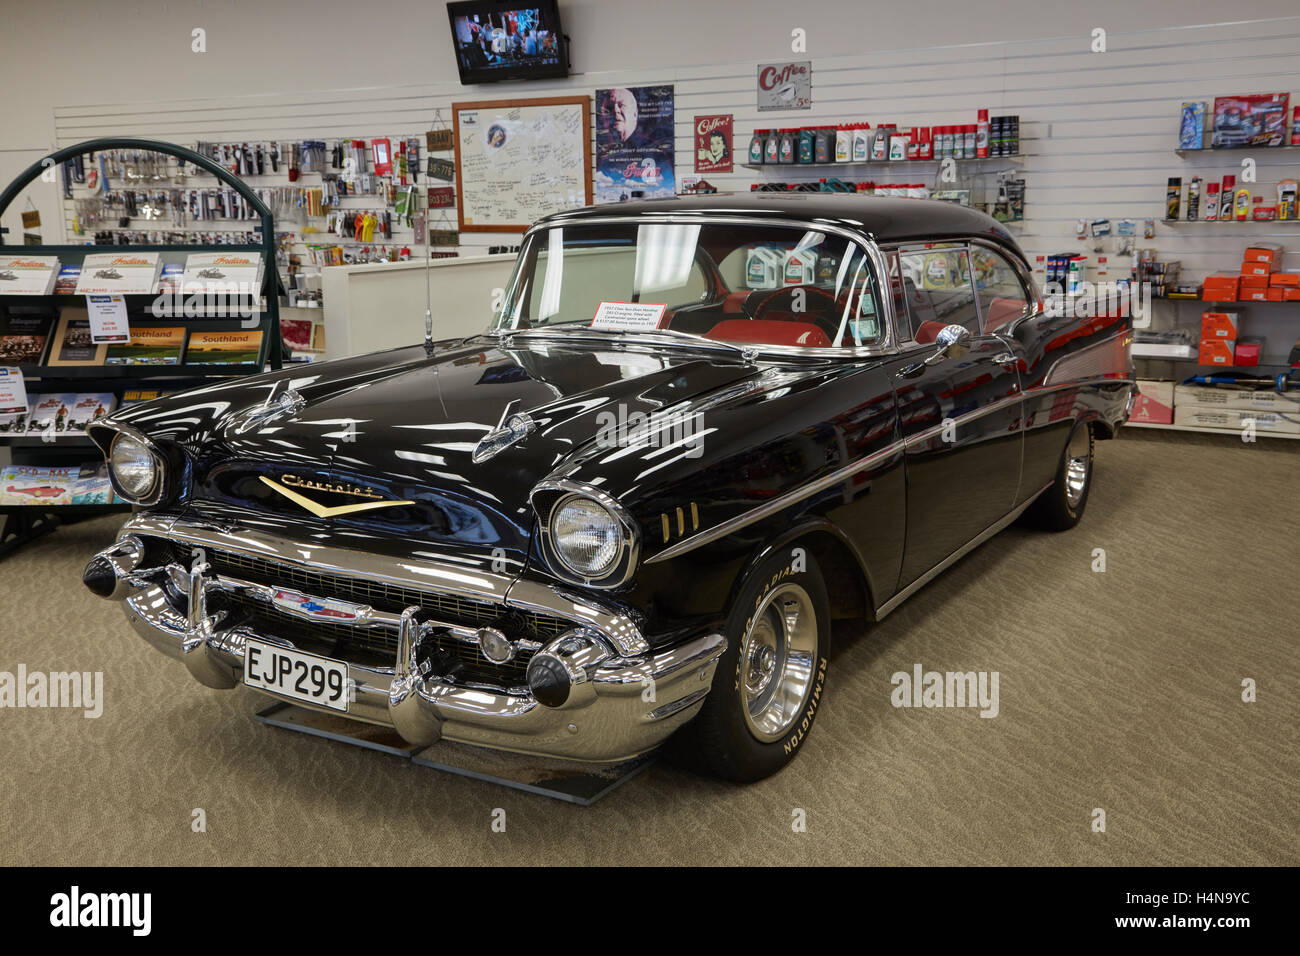 1957 Chevrolet two door hardtop displayed in E Hayes and Sons hardware shop, Invercargill, Southland, South Island, - Stock Image